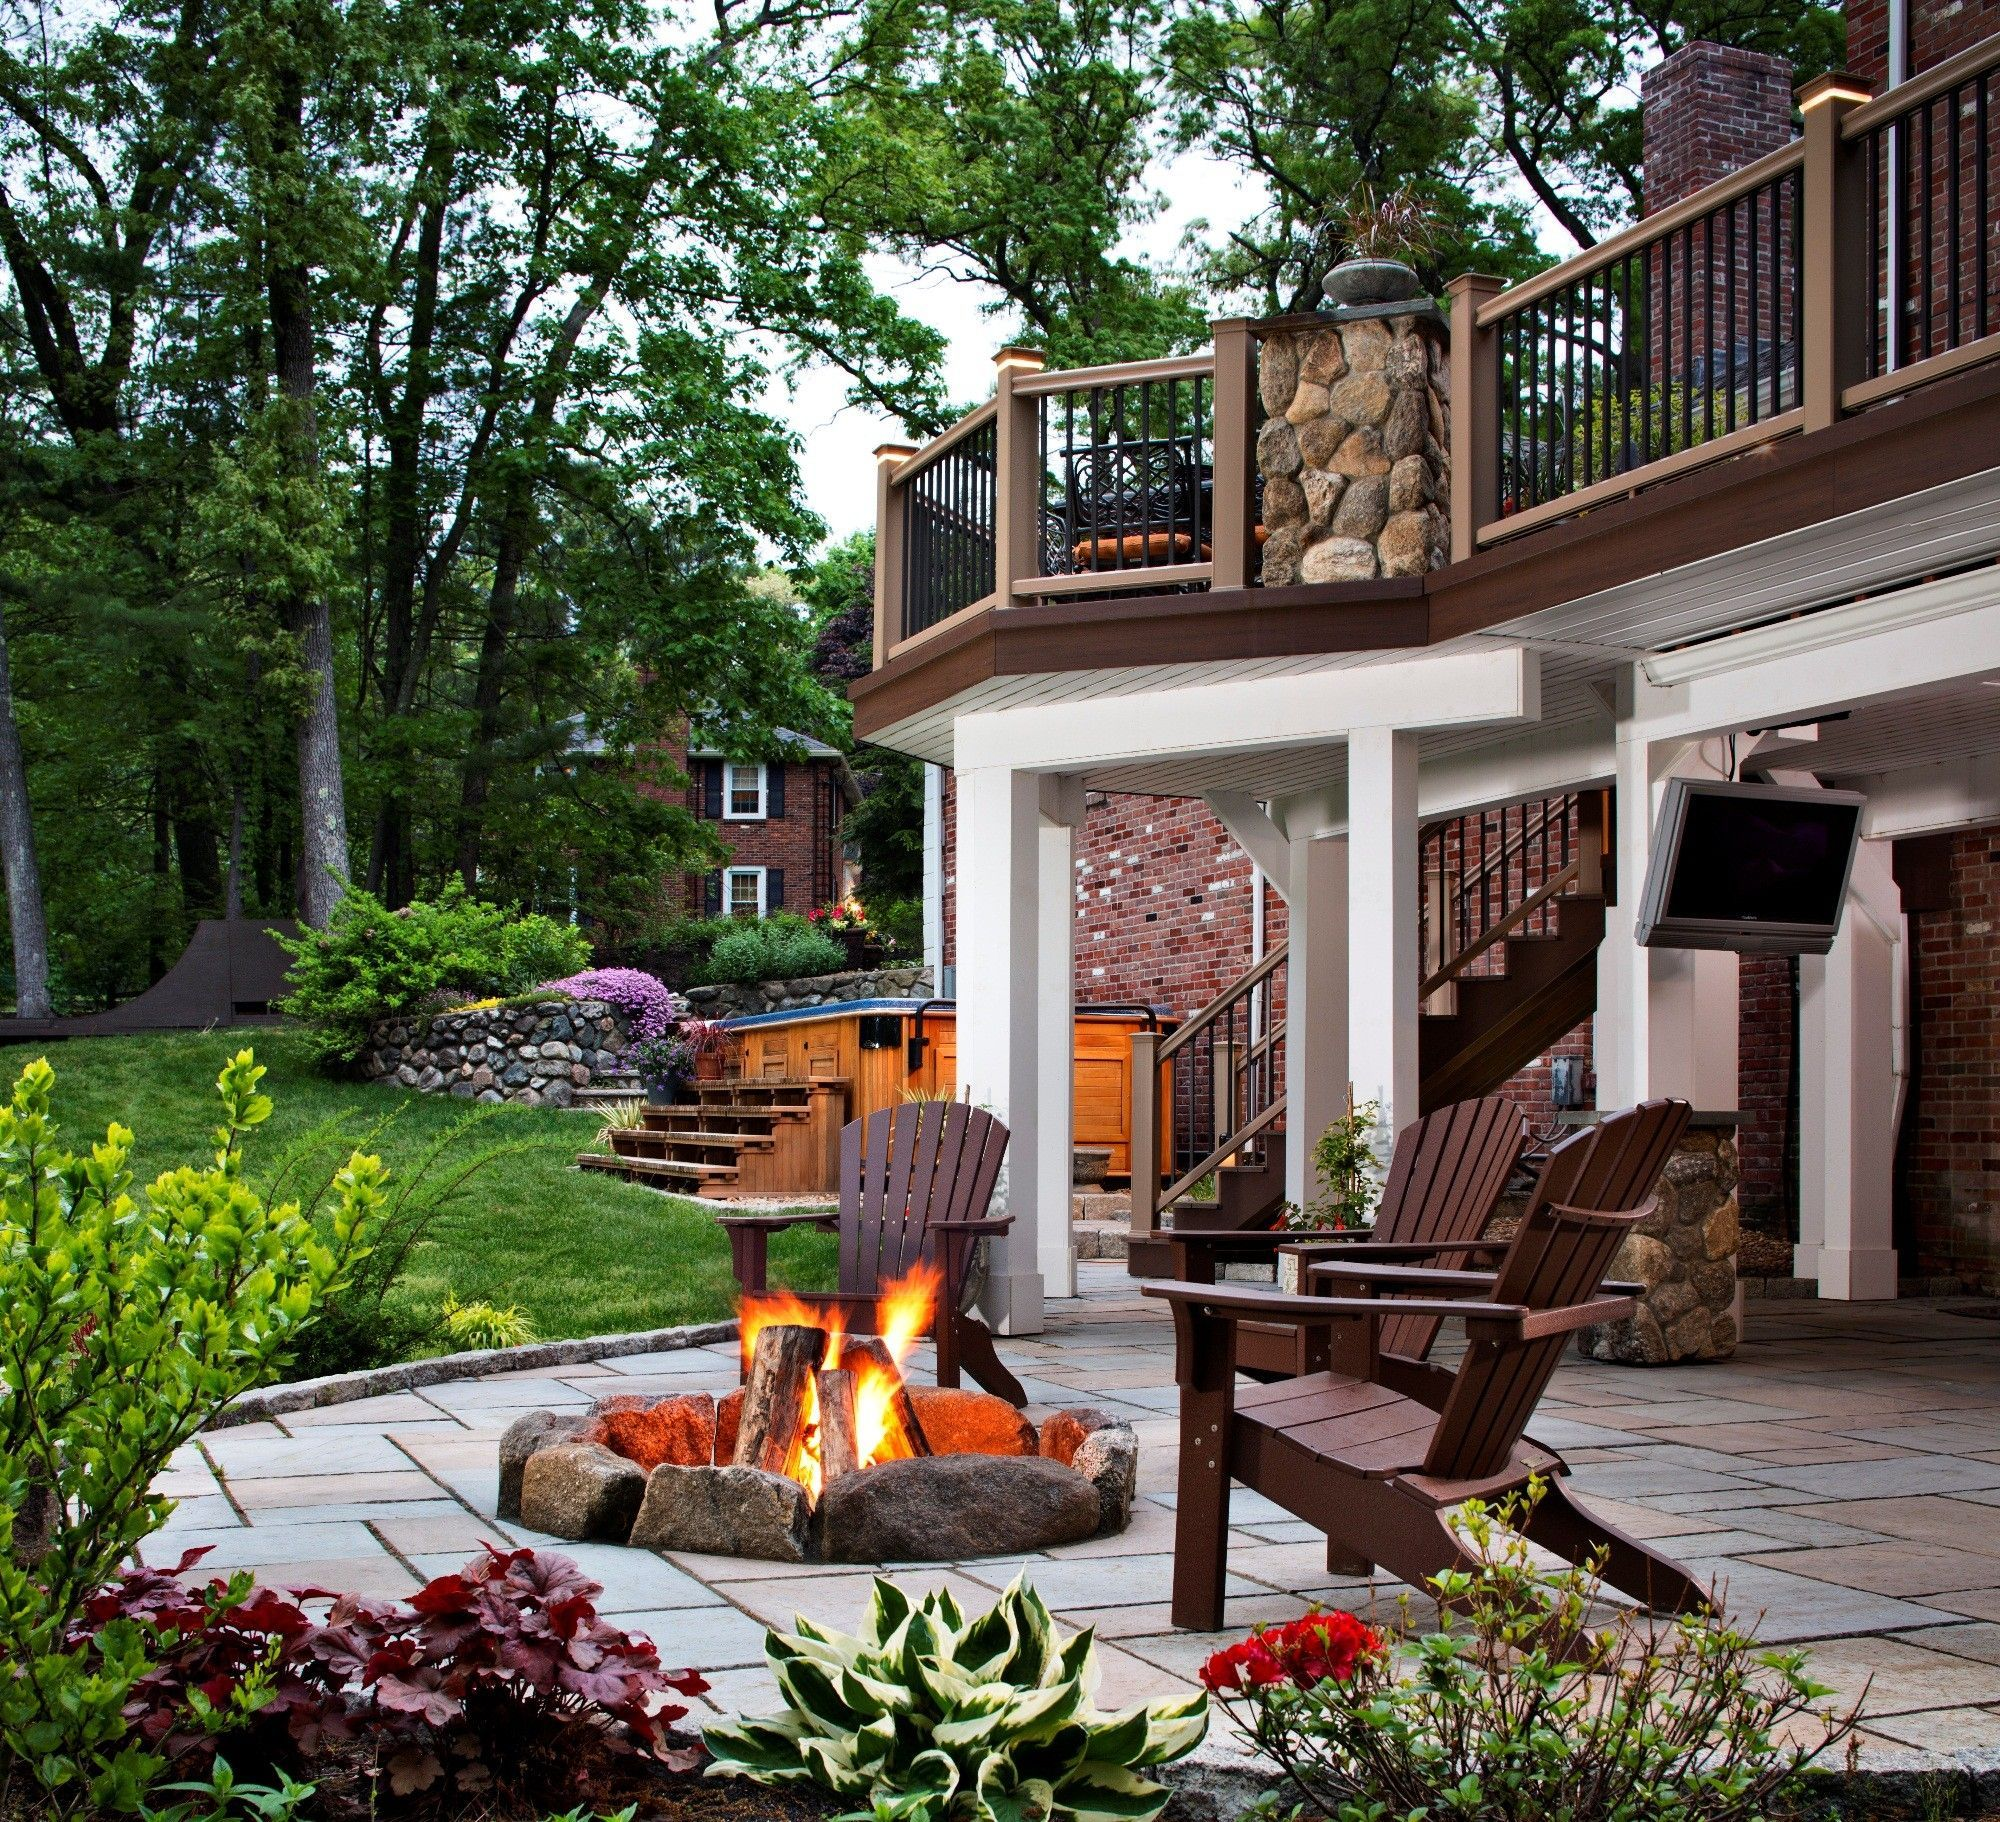 Decorating Great Outdoor Patio Ideas With Fire Pit Area And Wood Deck Railing Also Using Staircase Designs Beautiful